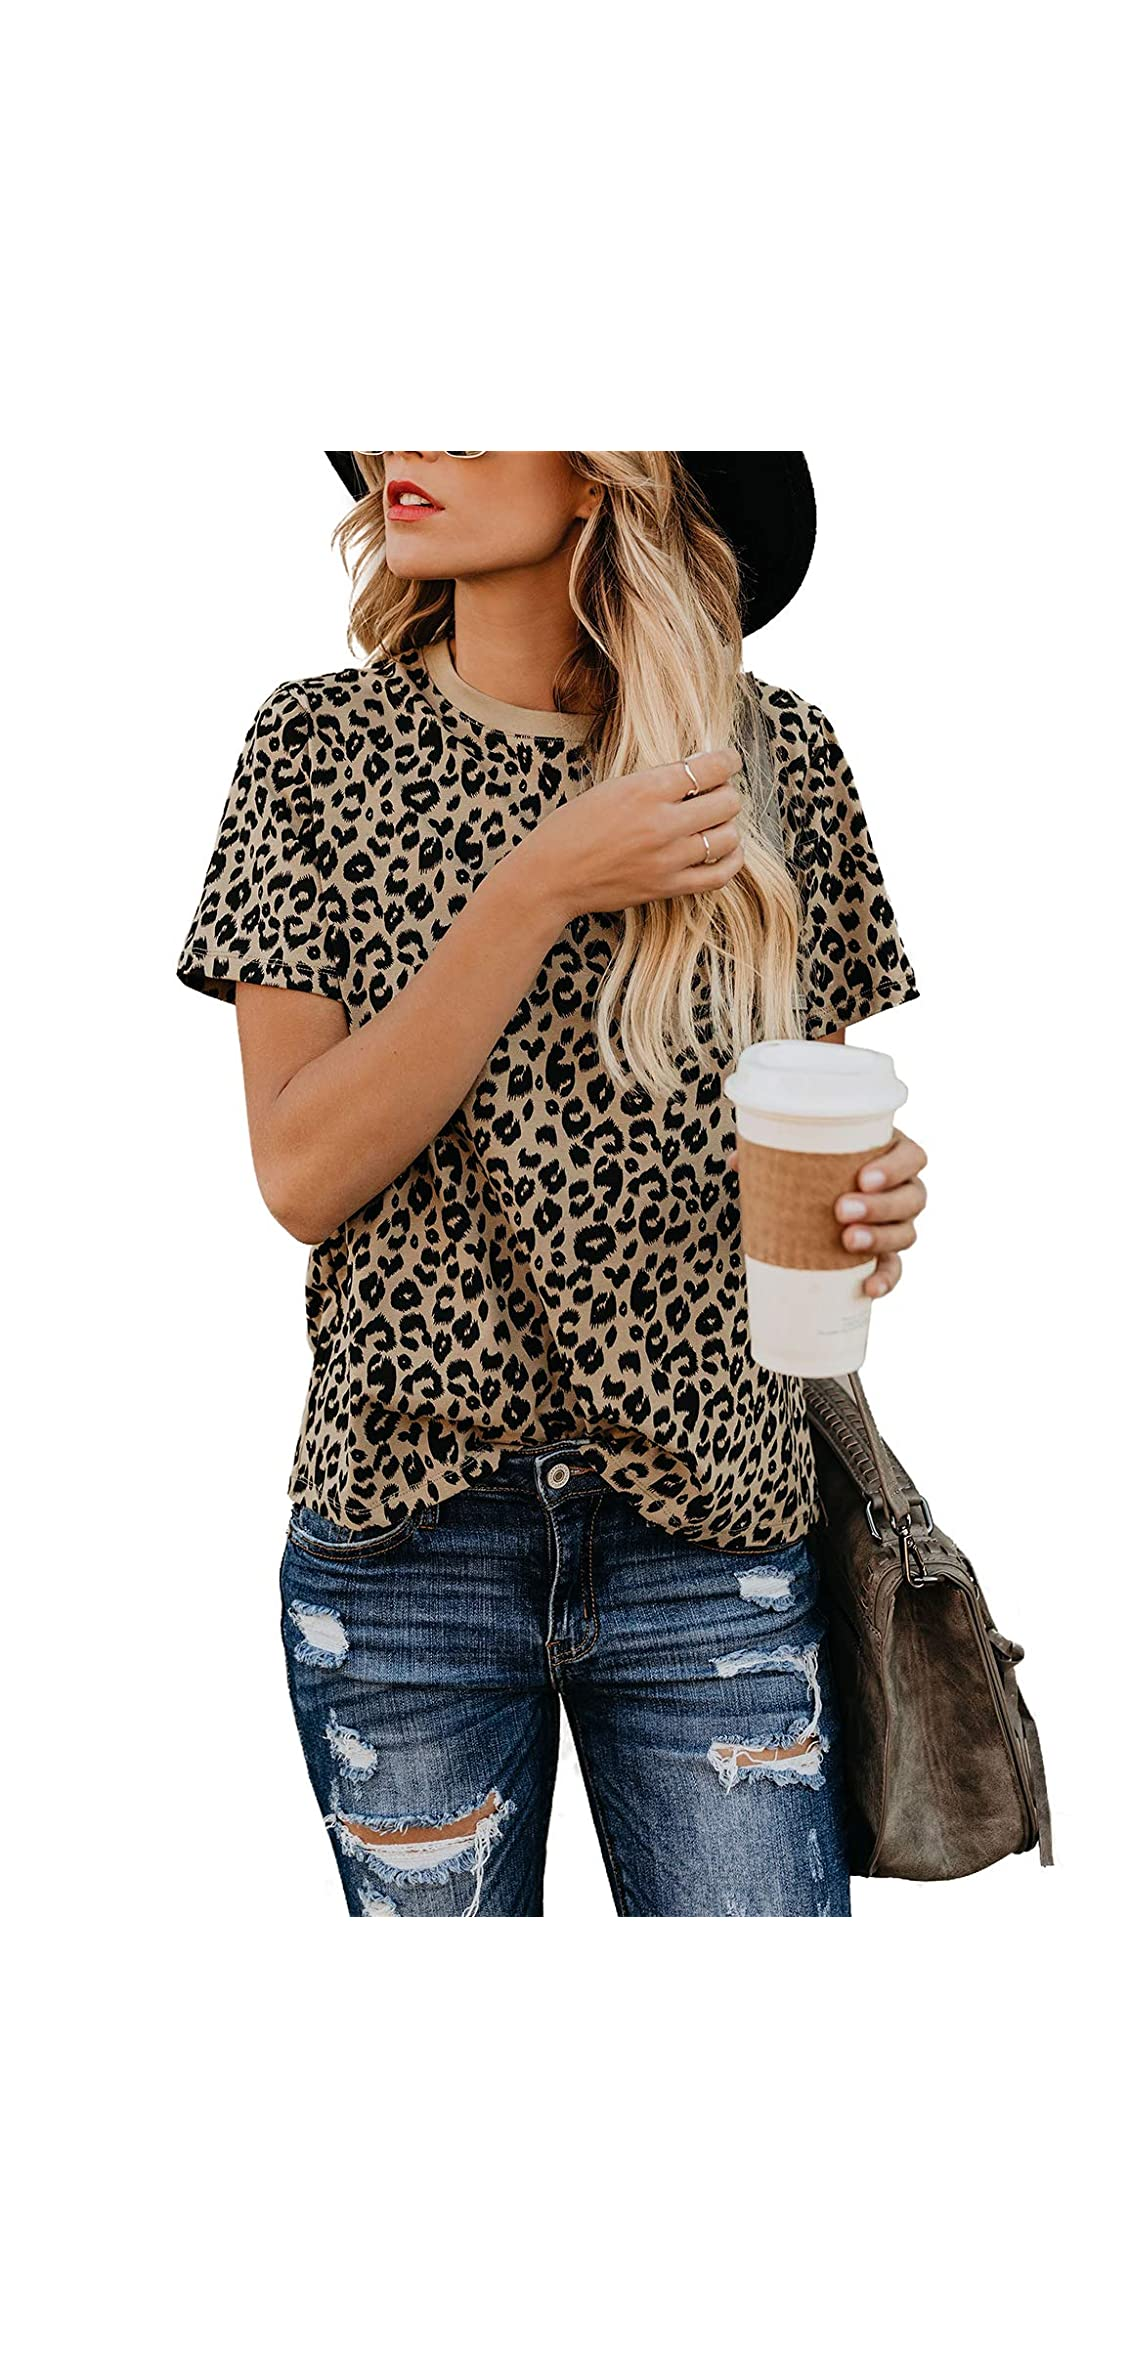 Womens Leopard Print Tops Short Sleeve Round Neck